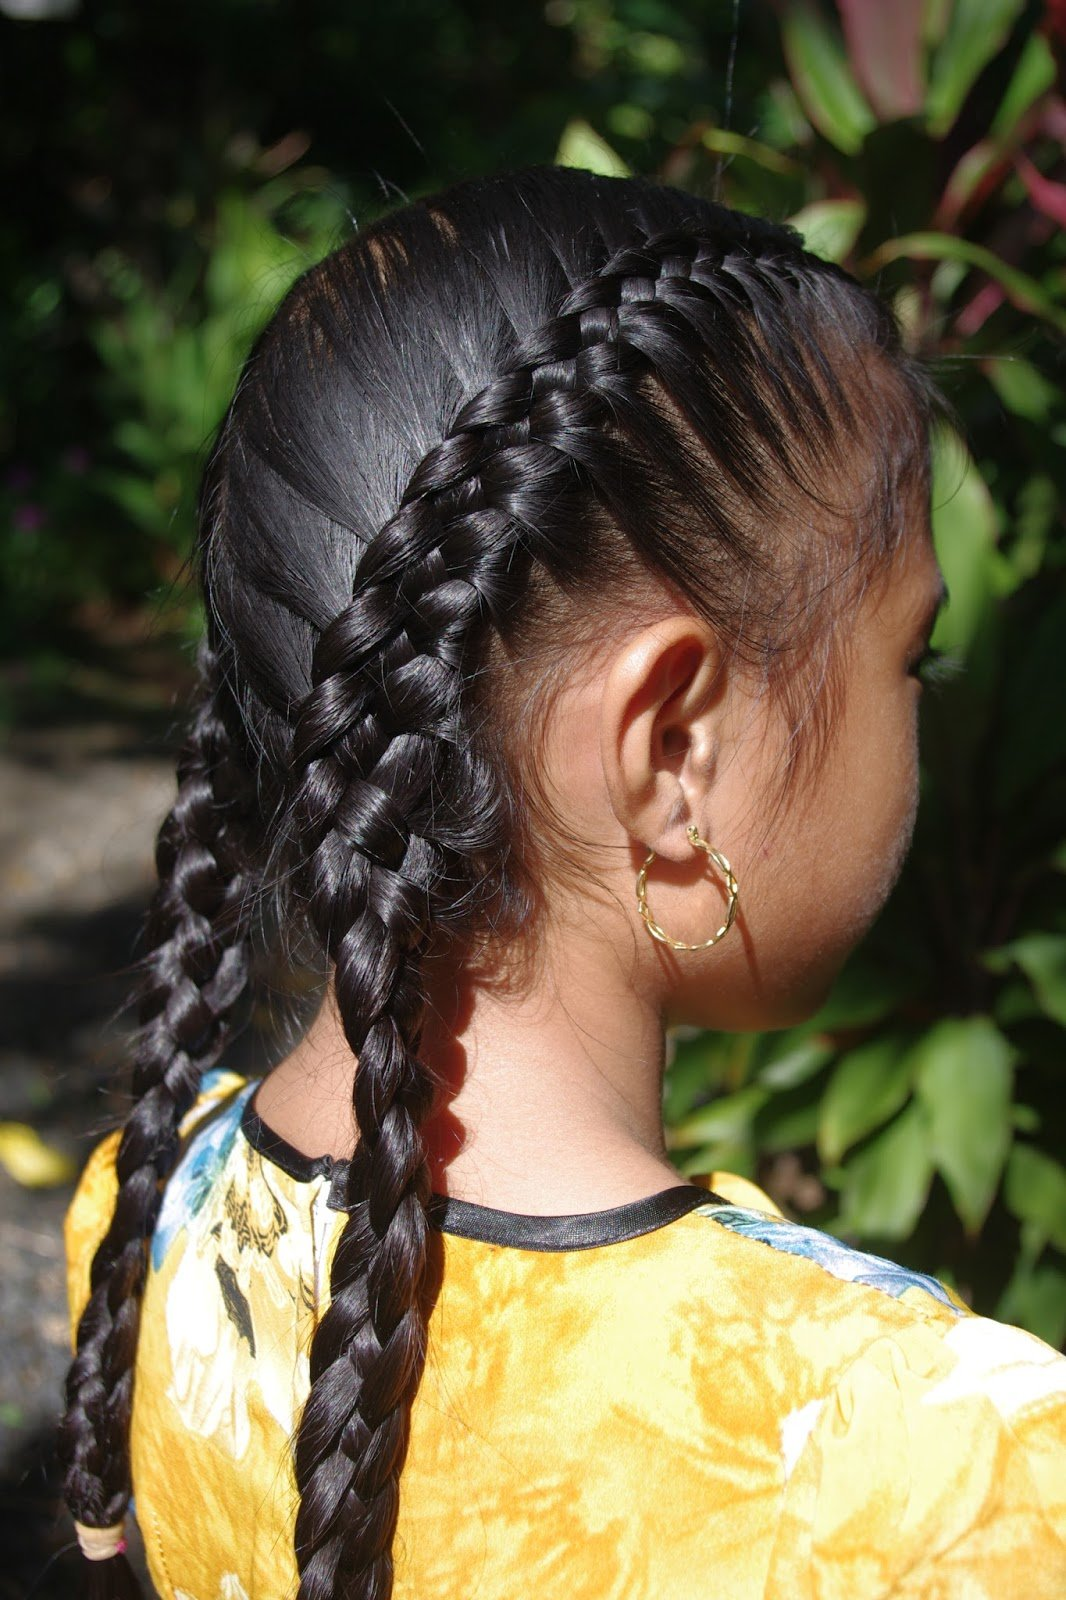 The Best Braids Hairstyles For Super Long Hair July 2013 Pictures